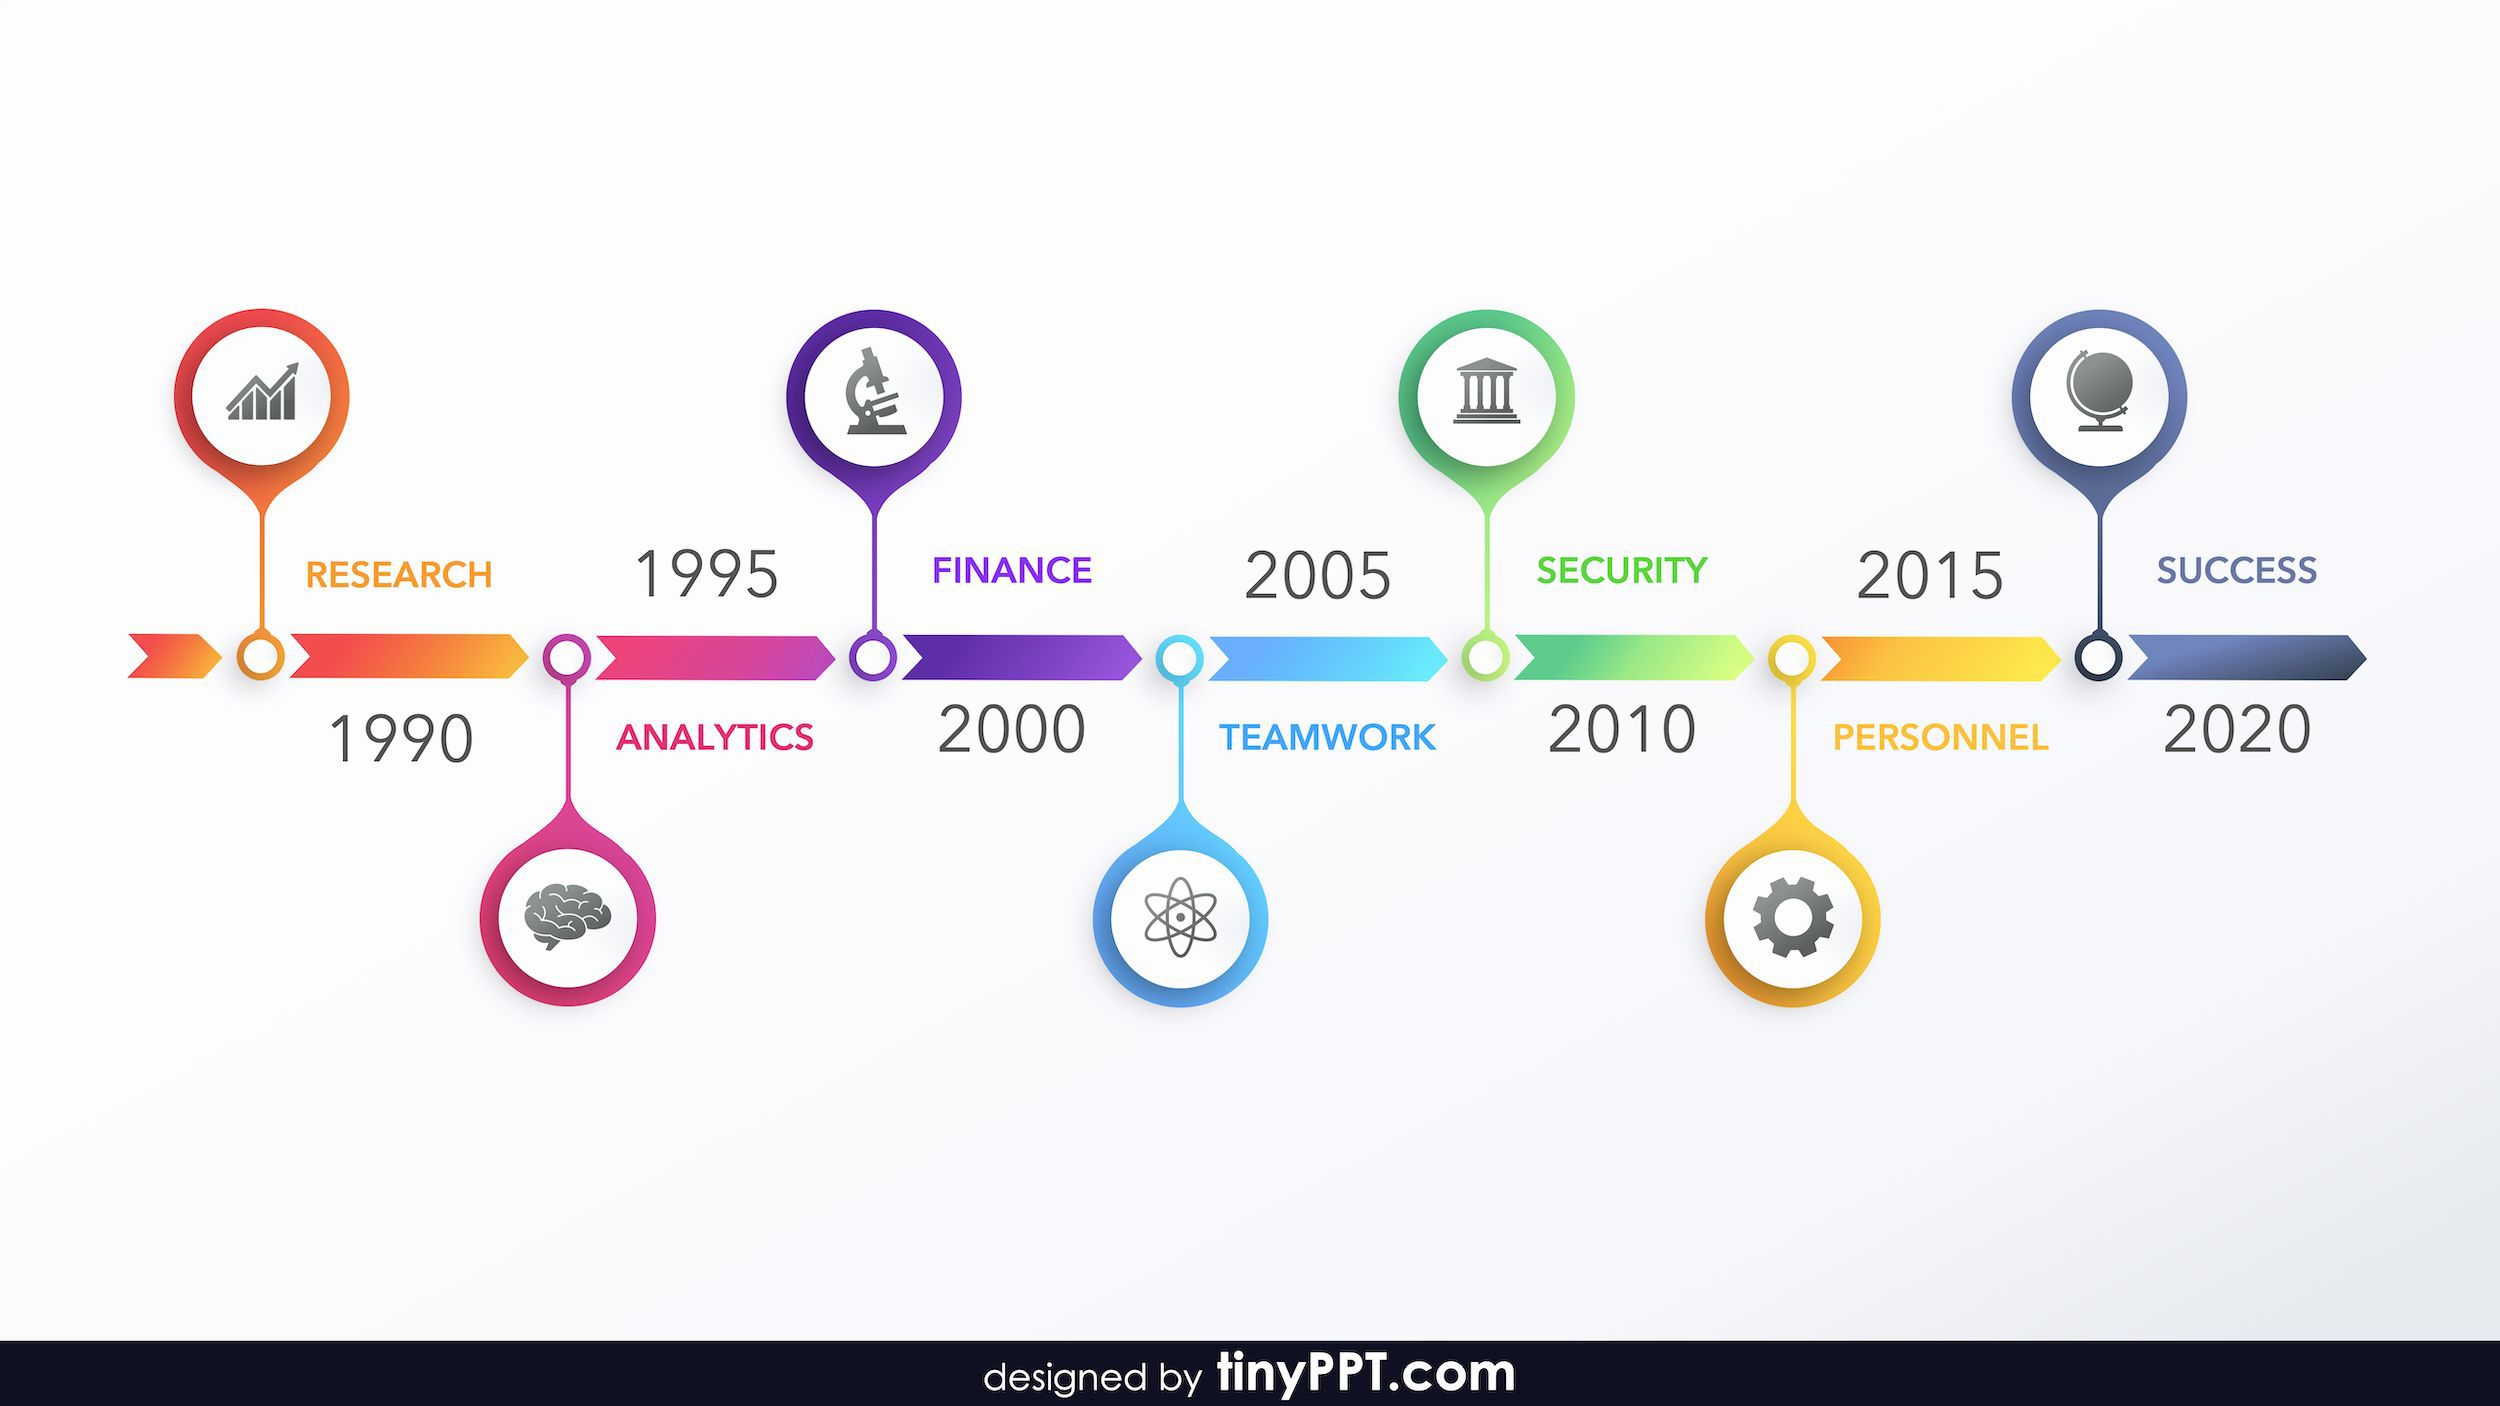 000 Stunning Powerpoint Timeline Template Free Download High Definition  Project HistoryFull